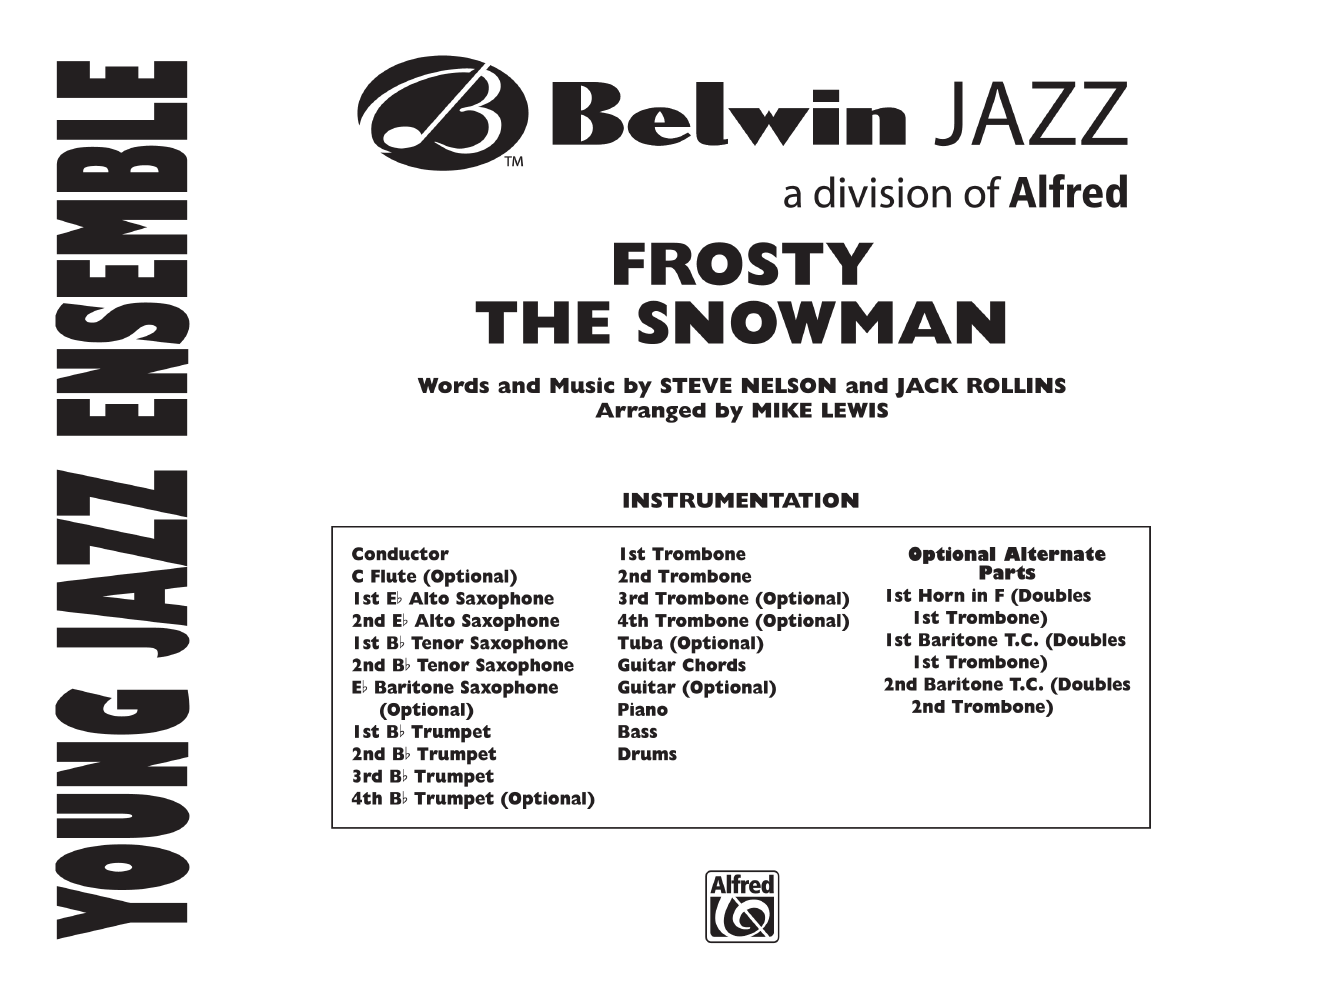 graphic about Frosty the Snowman Sheet Music Free Printable identify Frosty the Snowman arr. Mike Lewis J.W. Pepper Sheet Songs